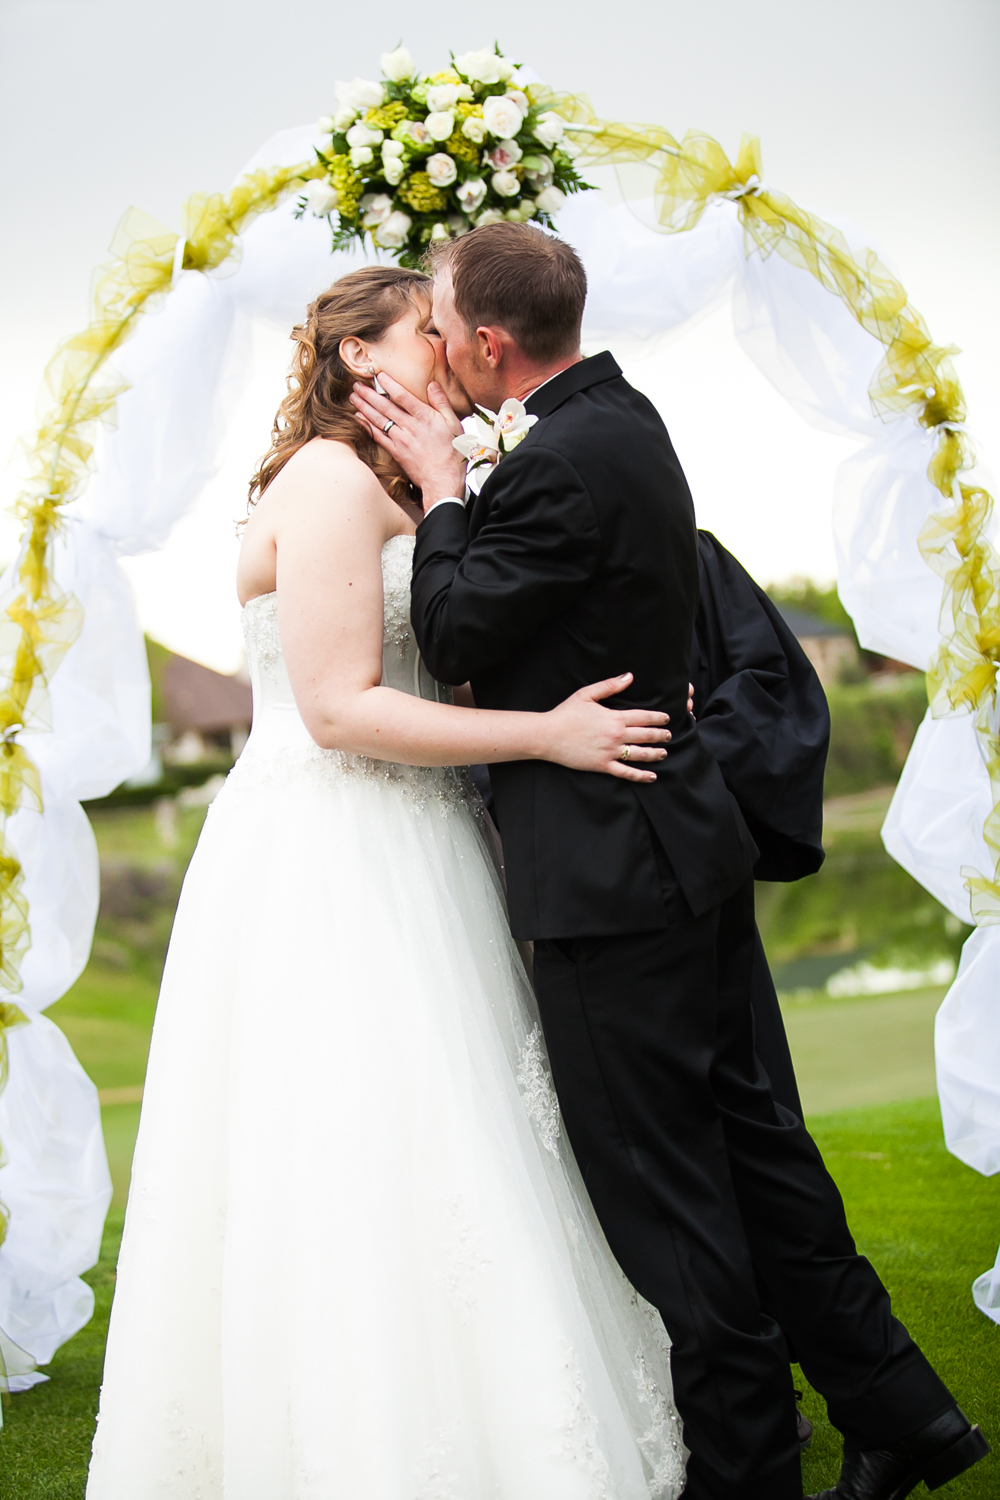 0148_LaurenKlubergWedding_4-13-13-682.jpg